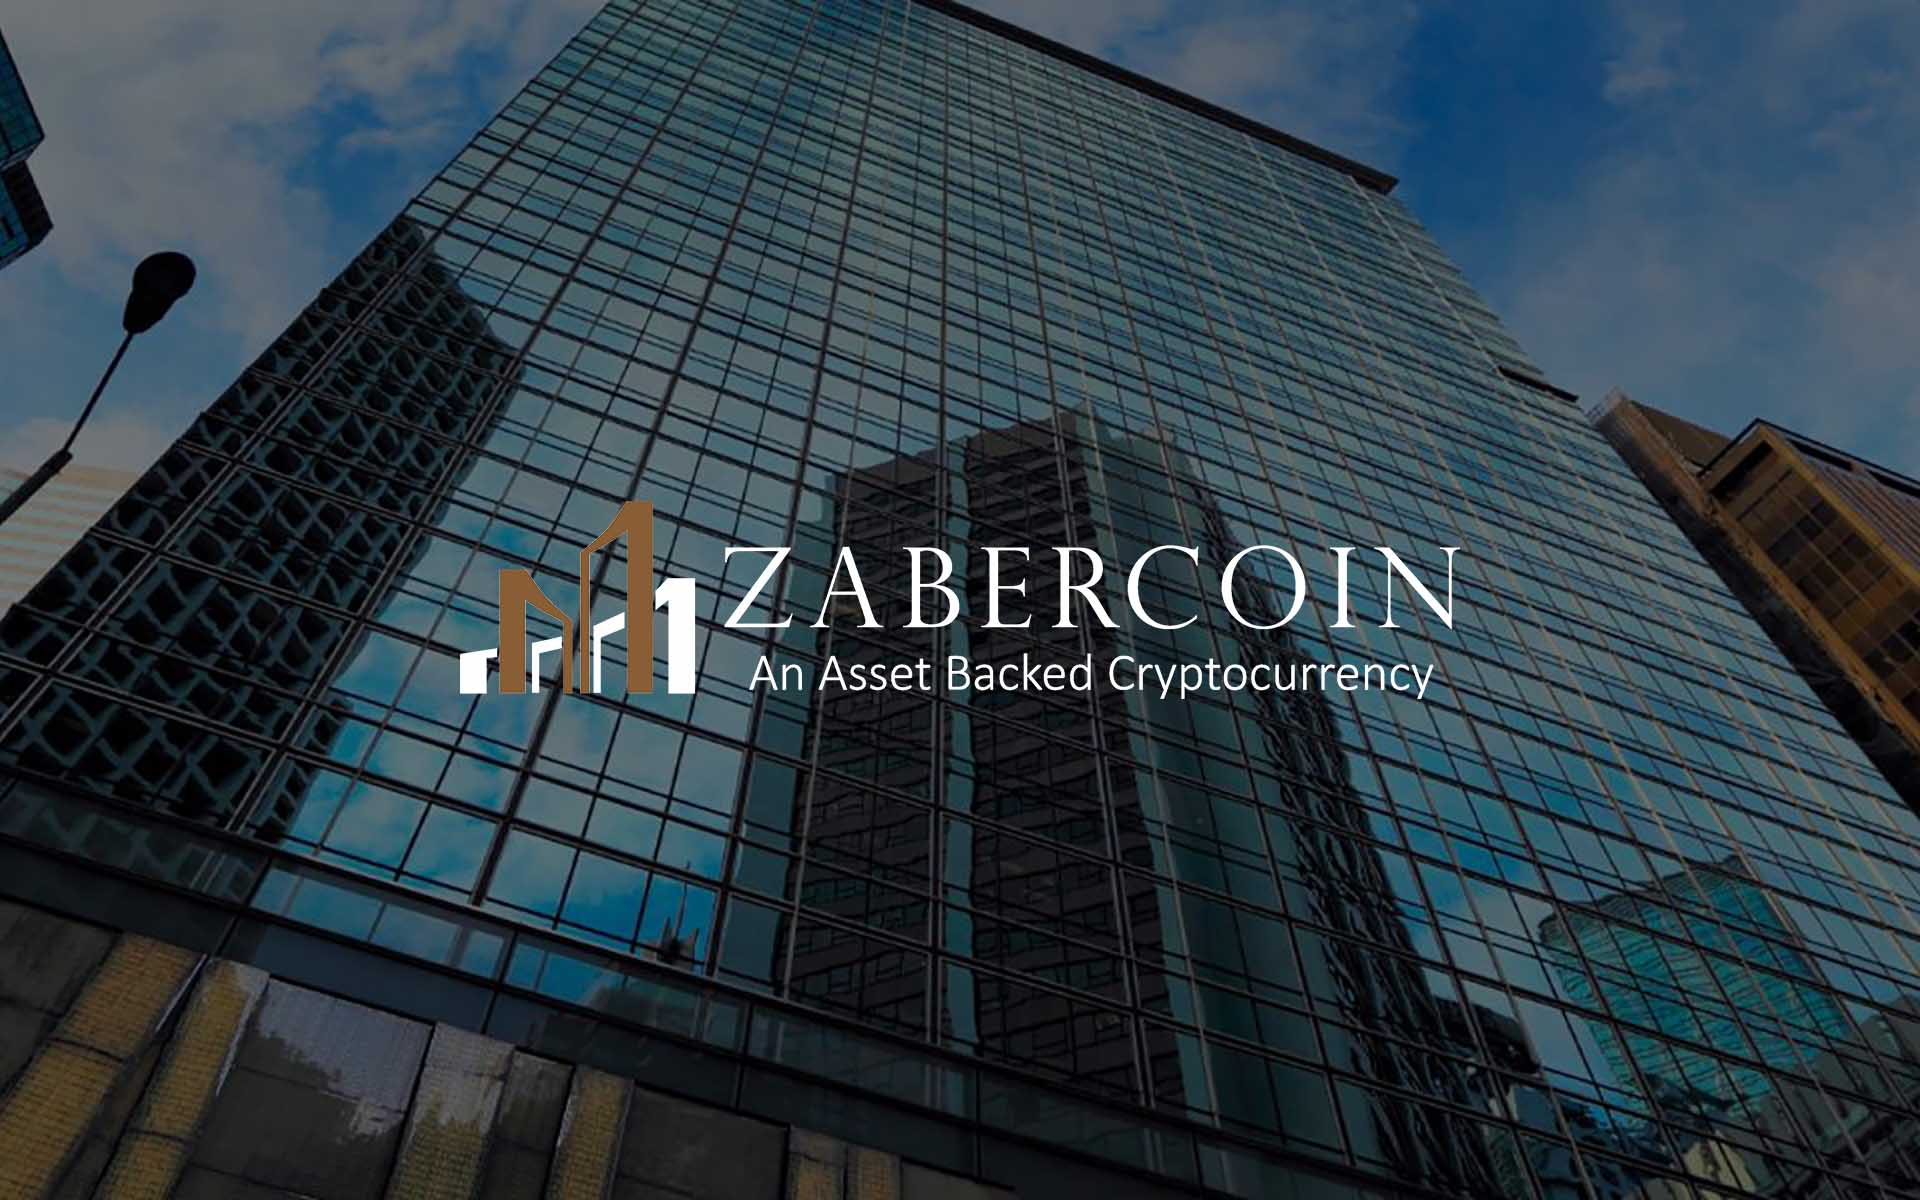 Zabercoin - an Asset Backed Cryptocurrency